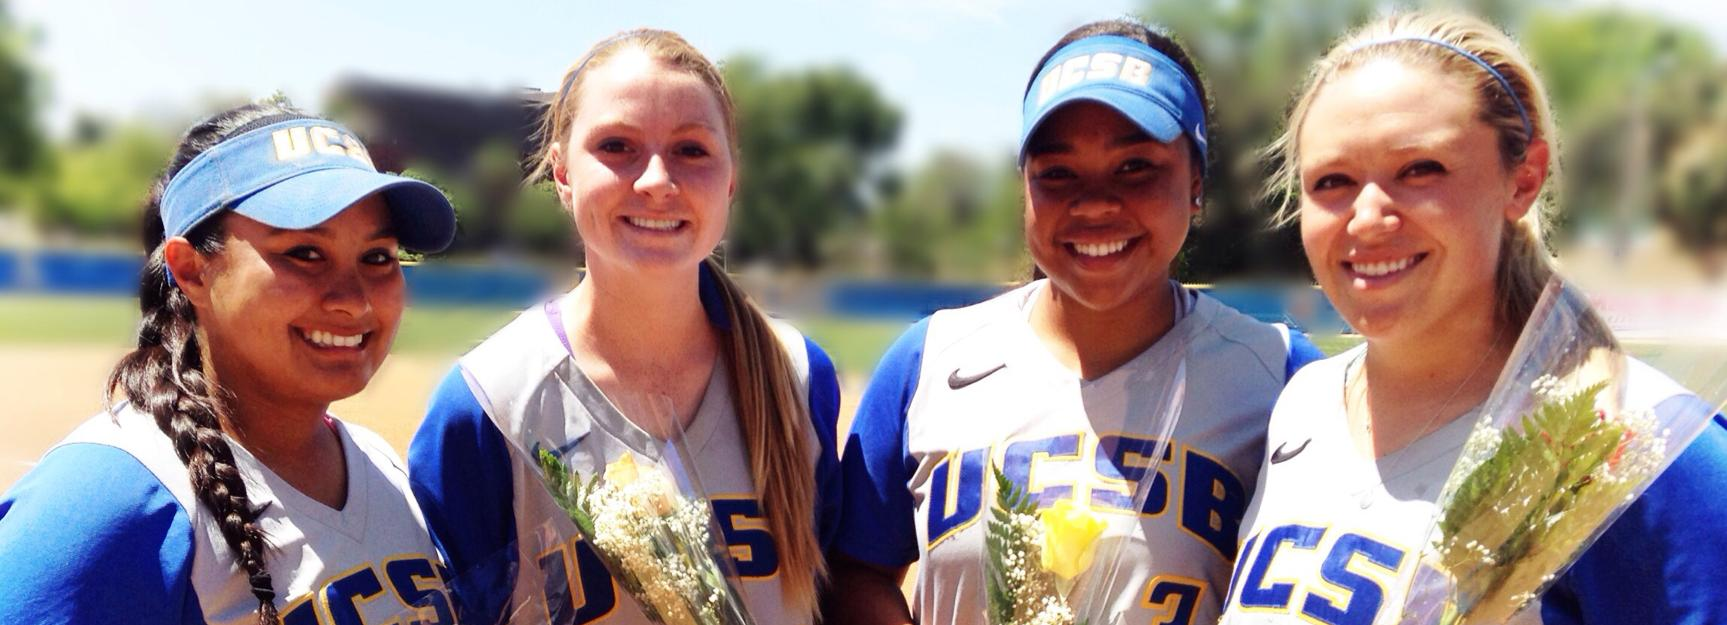 UCSB Falls in 10-9 Thriller to Long Beach, Seniors Play in Final Home Game